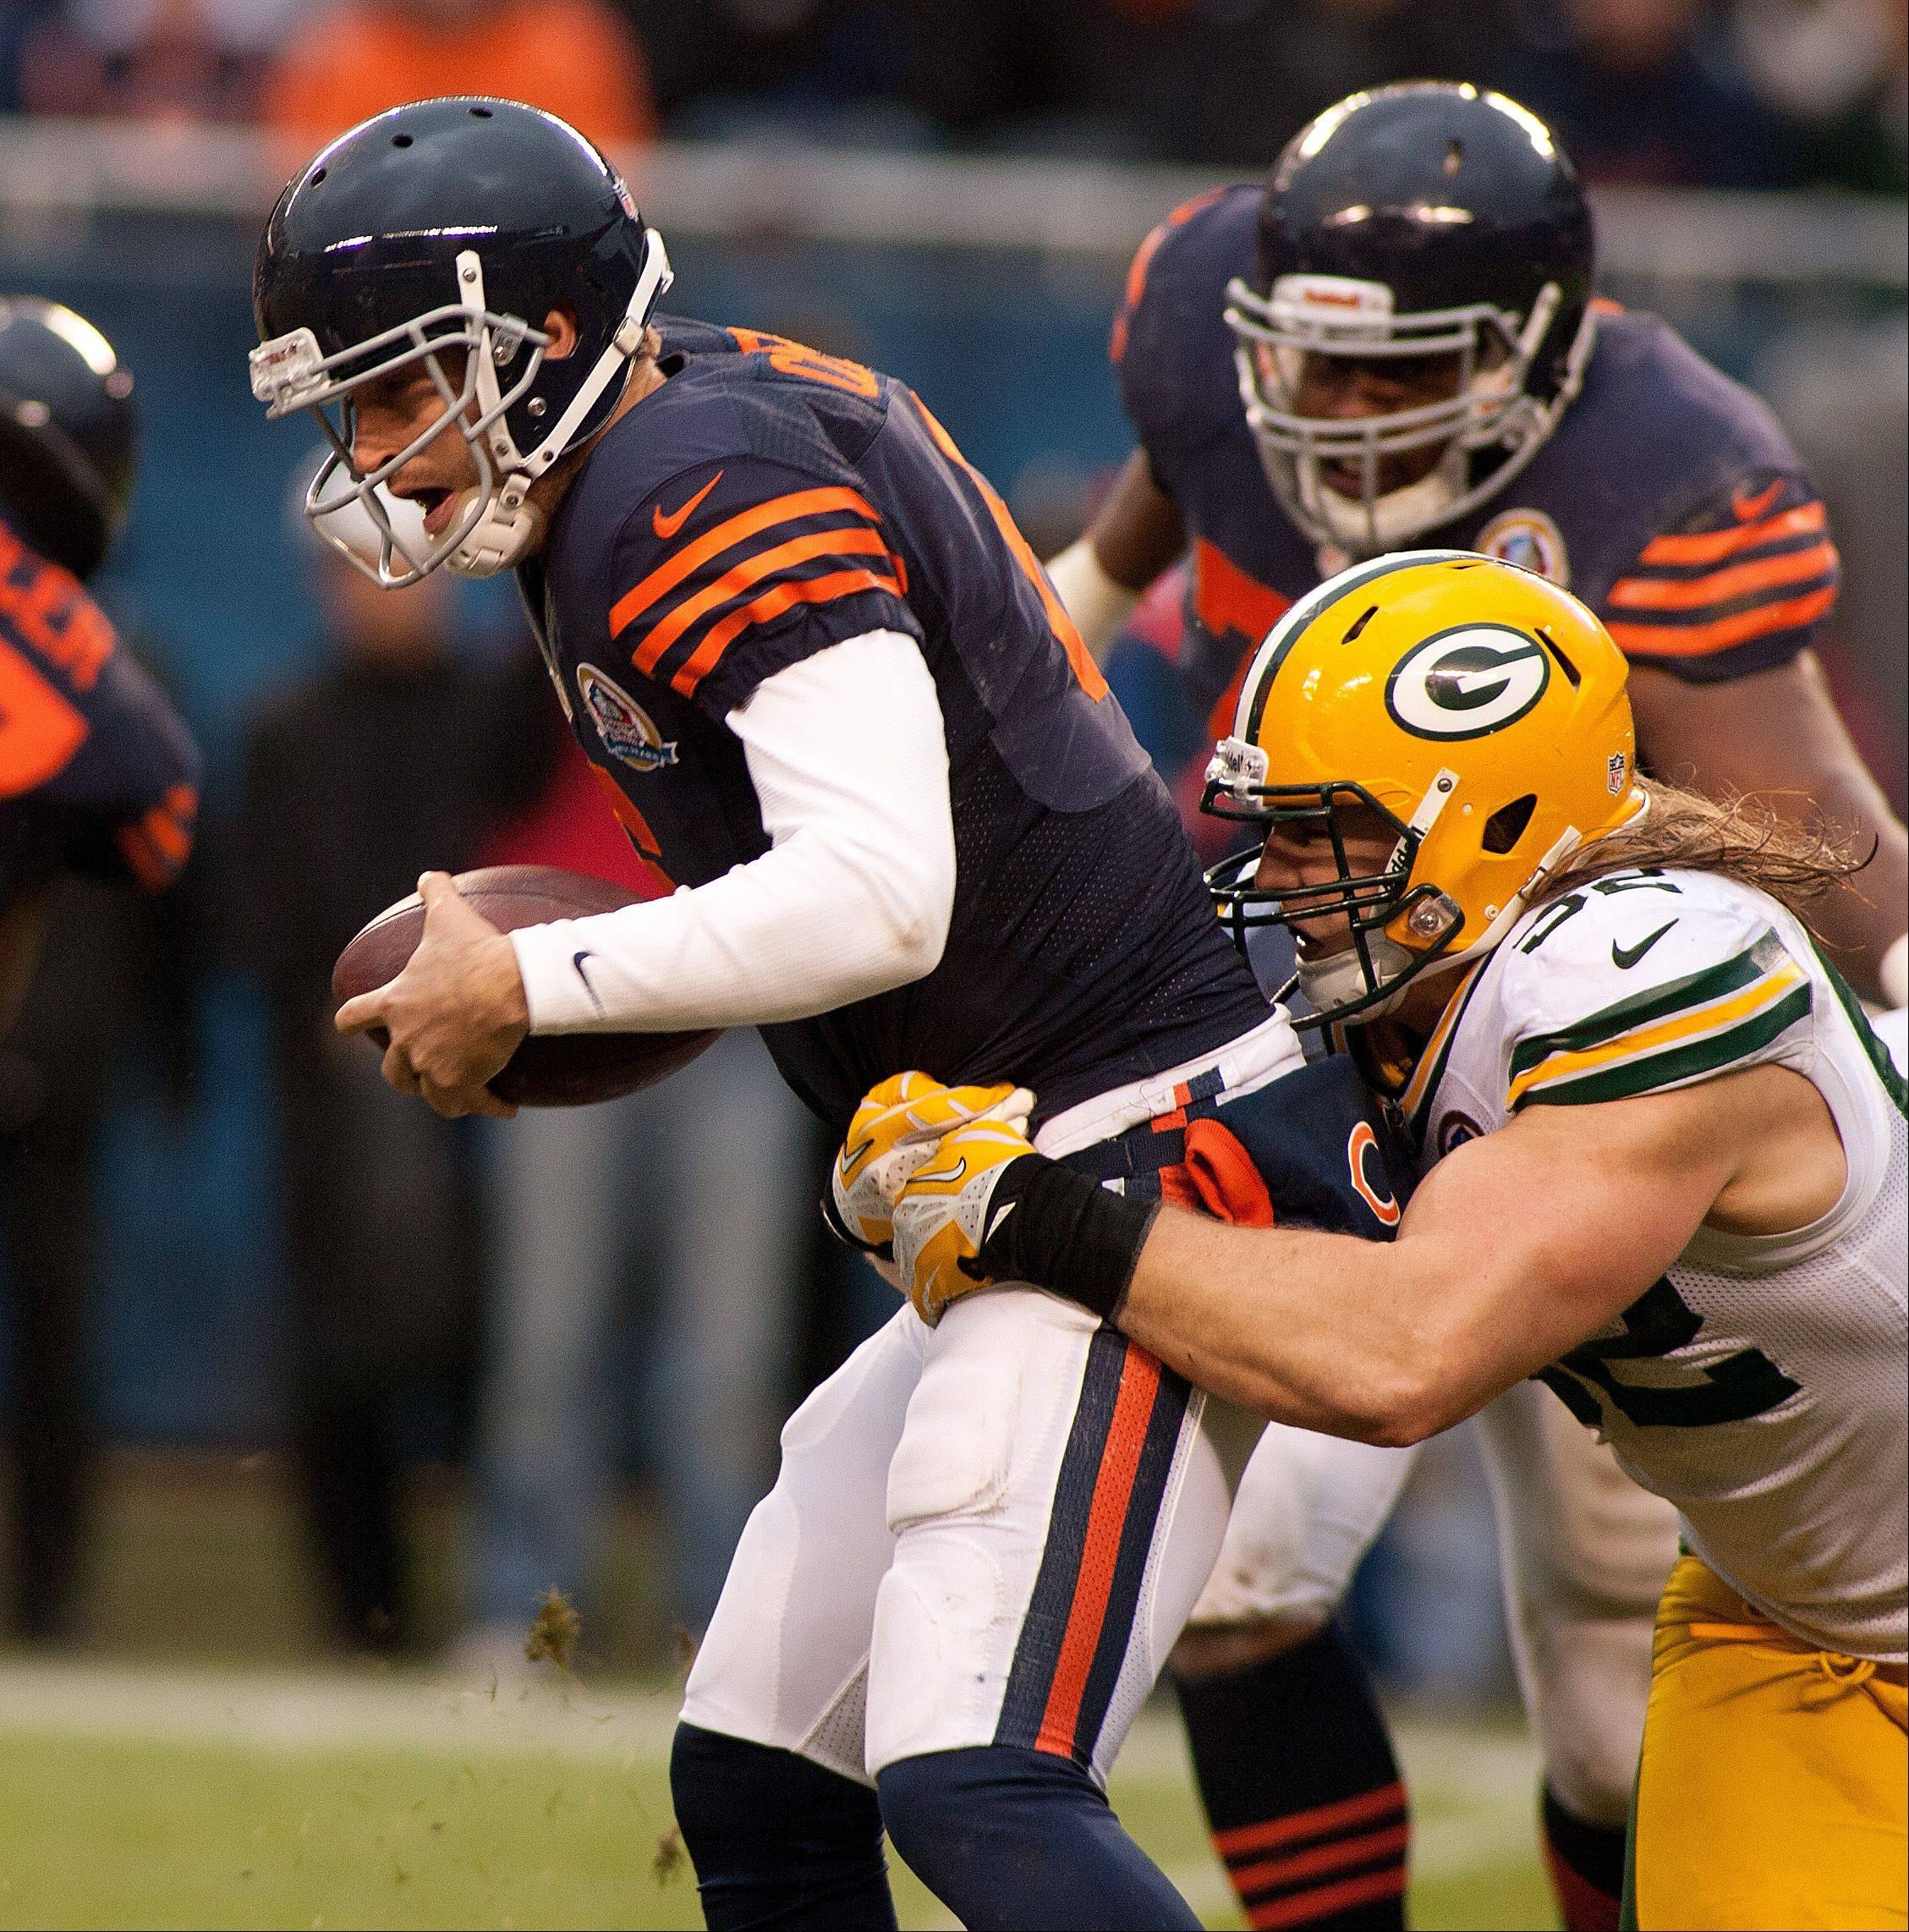 The Bears' Jay Cutler is sacked by the Packer's Clay Mathews, right, late in the fourth quarter during Sunday's game at Soldier Field in Chicago.